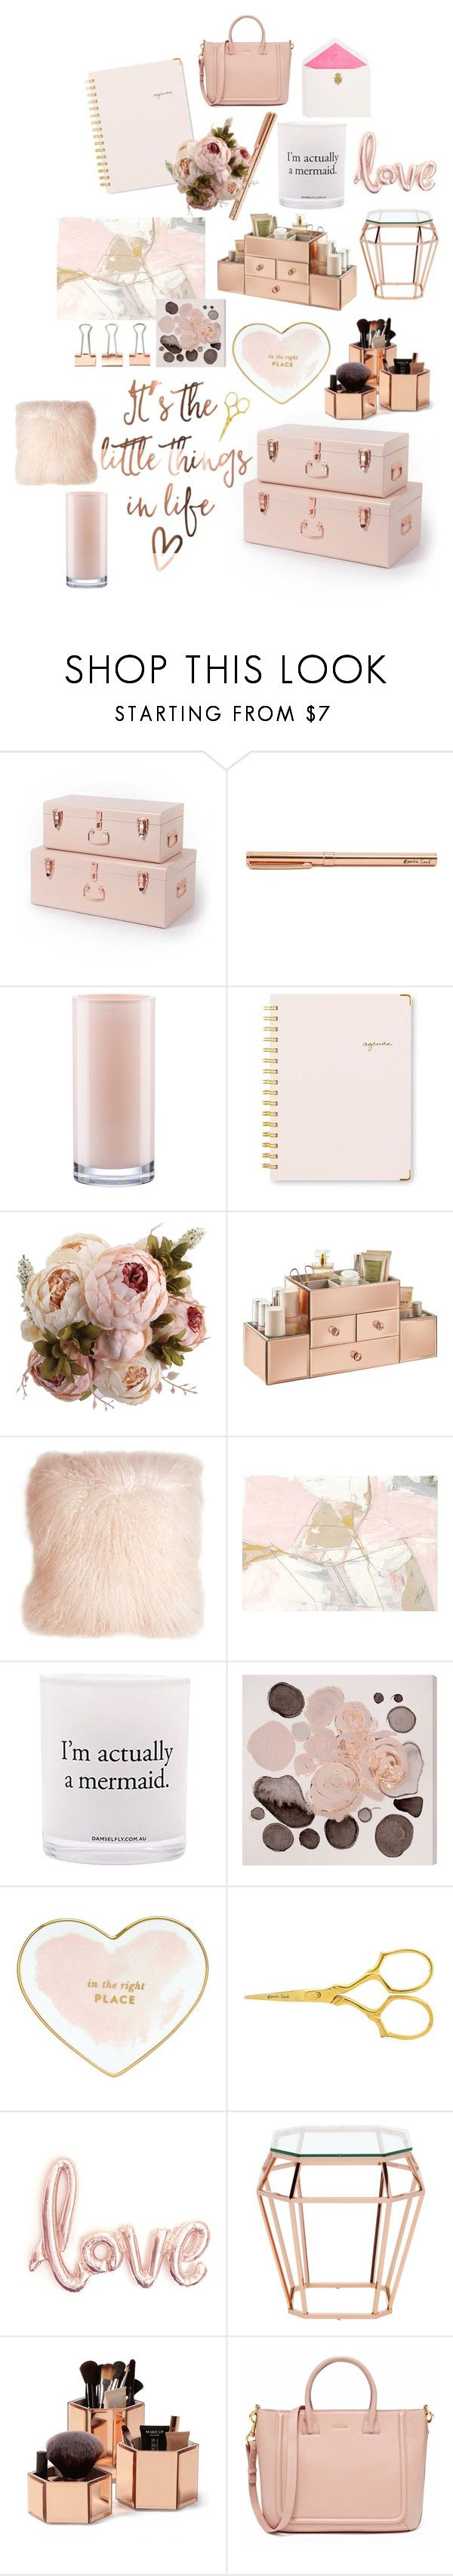 """Rose Gold Office"" by a-little-galaxy ❤ liked on Polyvore featuring interior, interiors, interior design, home, home decor, interior decorating, Kate Spade, Sugar Paper, Pillow Decor and Damselfly Candles"